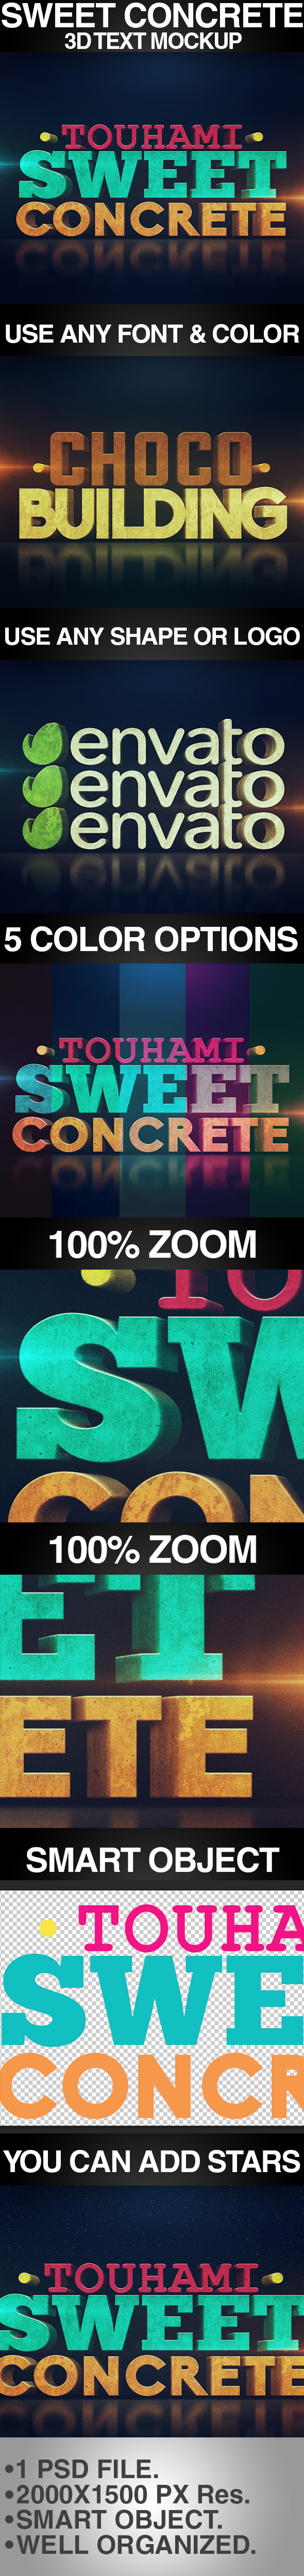 Sweet Concrete 3D Text Mockup - Text Effects Styles